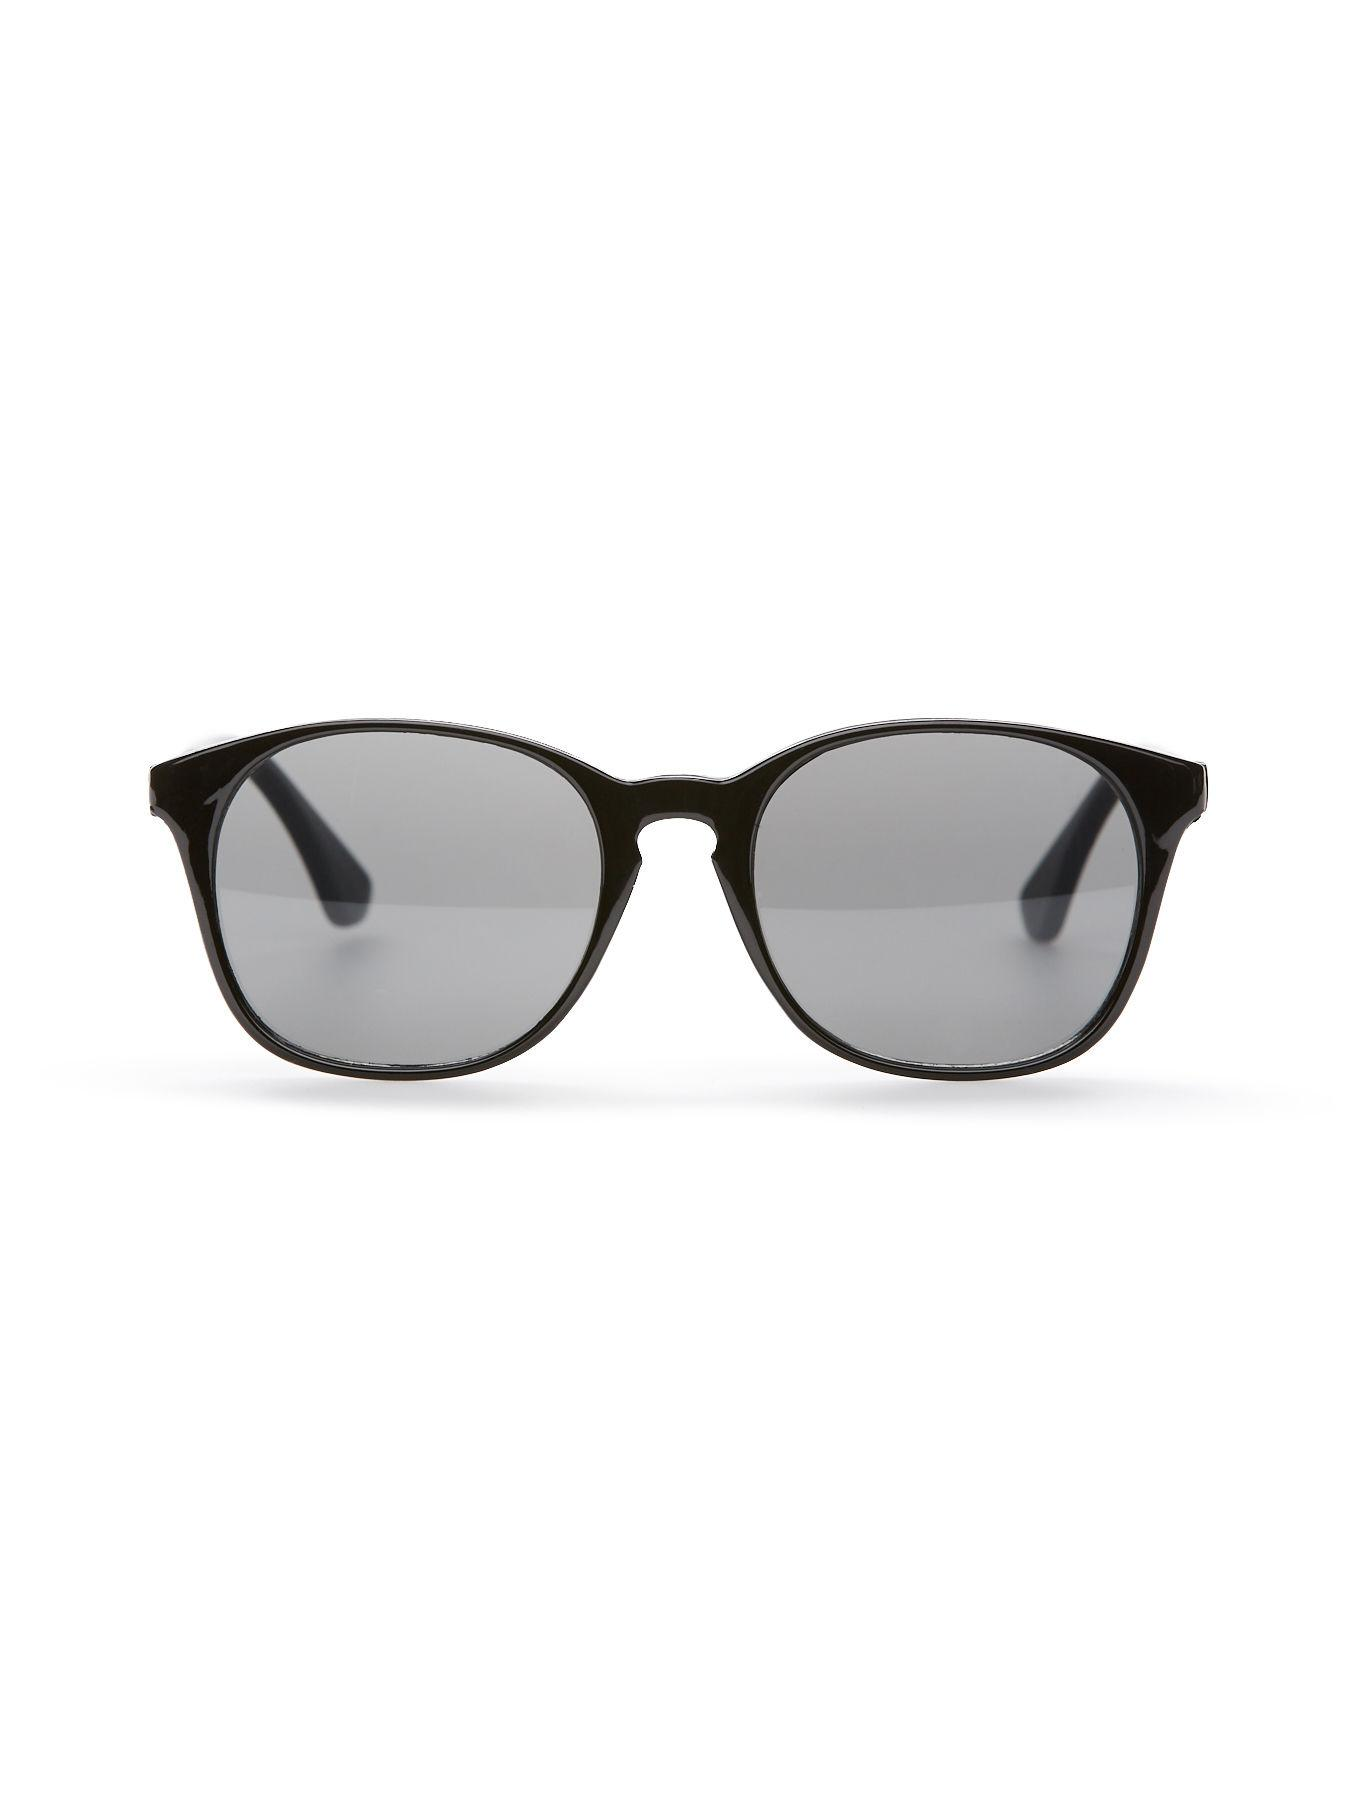 4ee3f9f78b Perry Ellis - Black Solid Round Sunglasses for Men - Lyst. View fullscreen